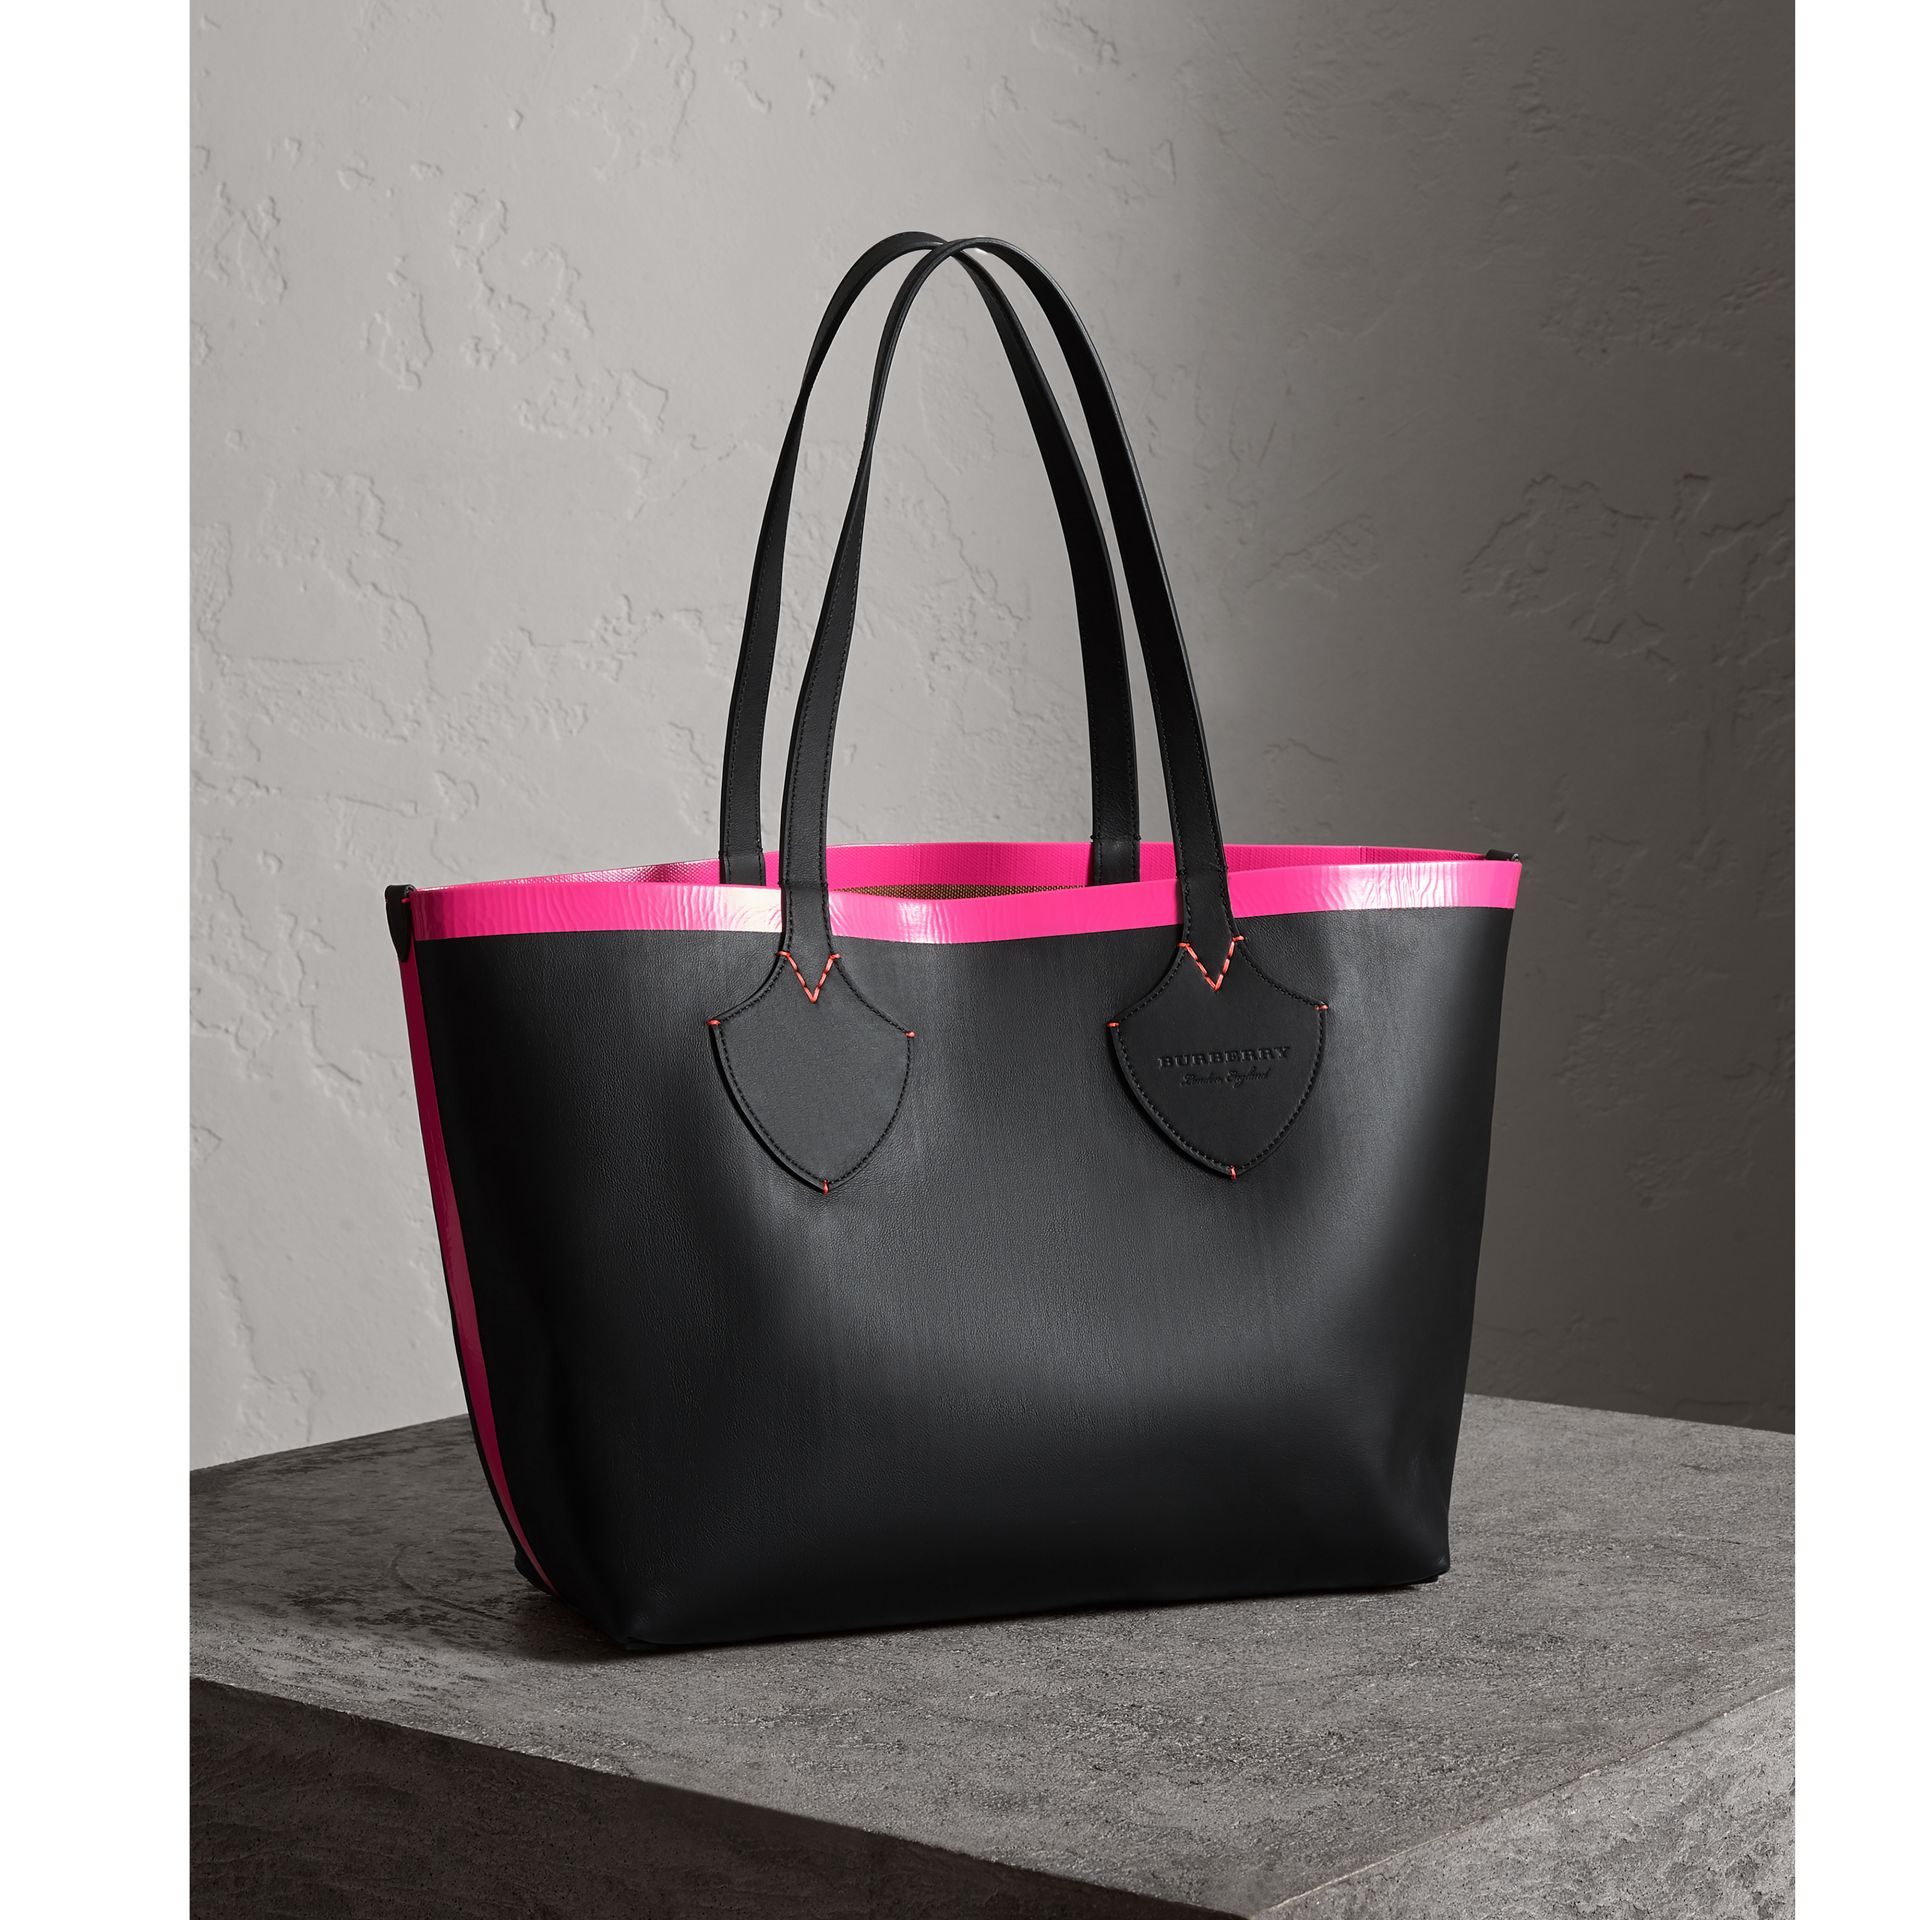 Borsa tote The Giant media reversibile in tela e pelle (Nero/rosa Neon) | Burberry - immagine della galleria 7